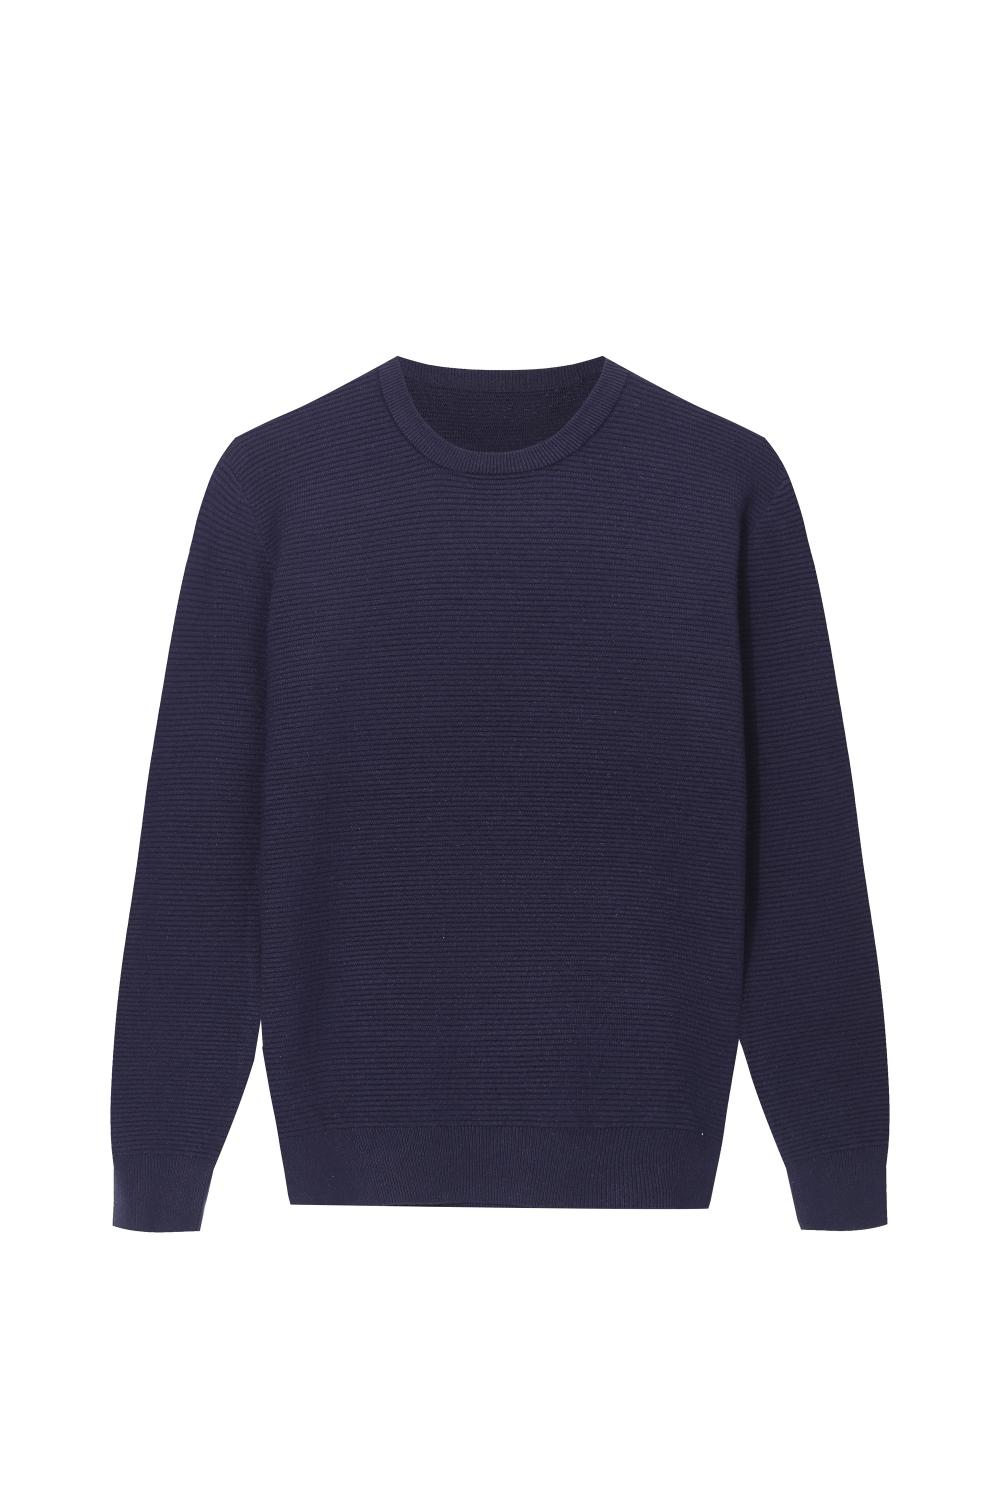 Men's Knitted Ottoman Stitch Crew-Neck Soft Pullover